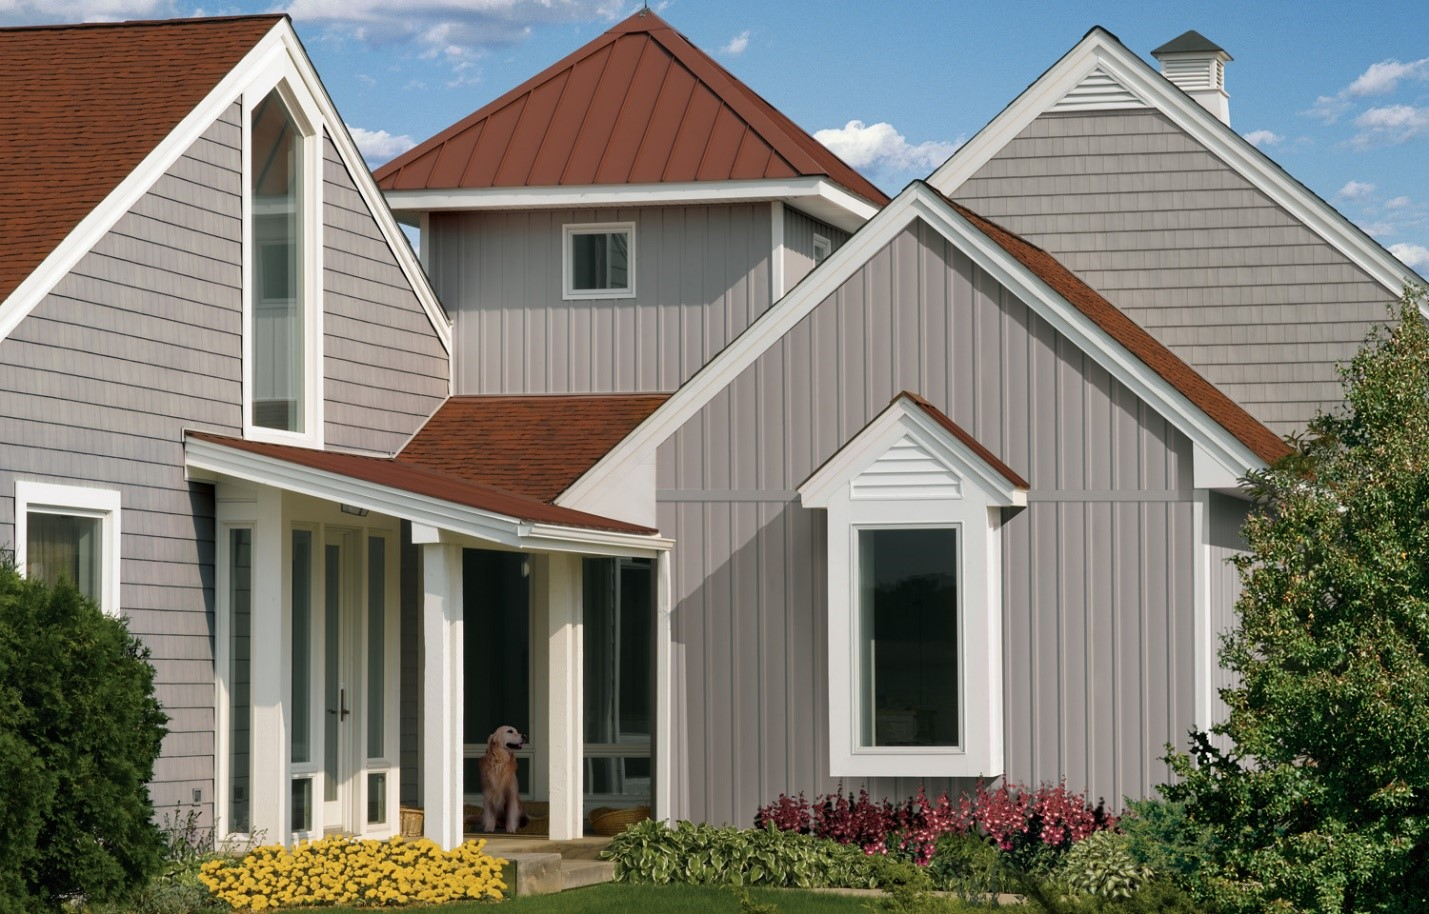 Vertical House Siding Considerations And Design Ideas